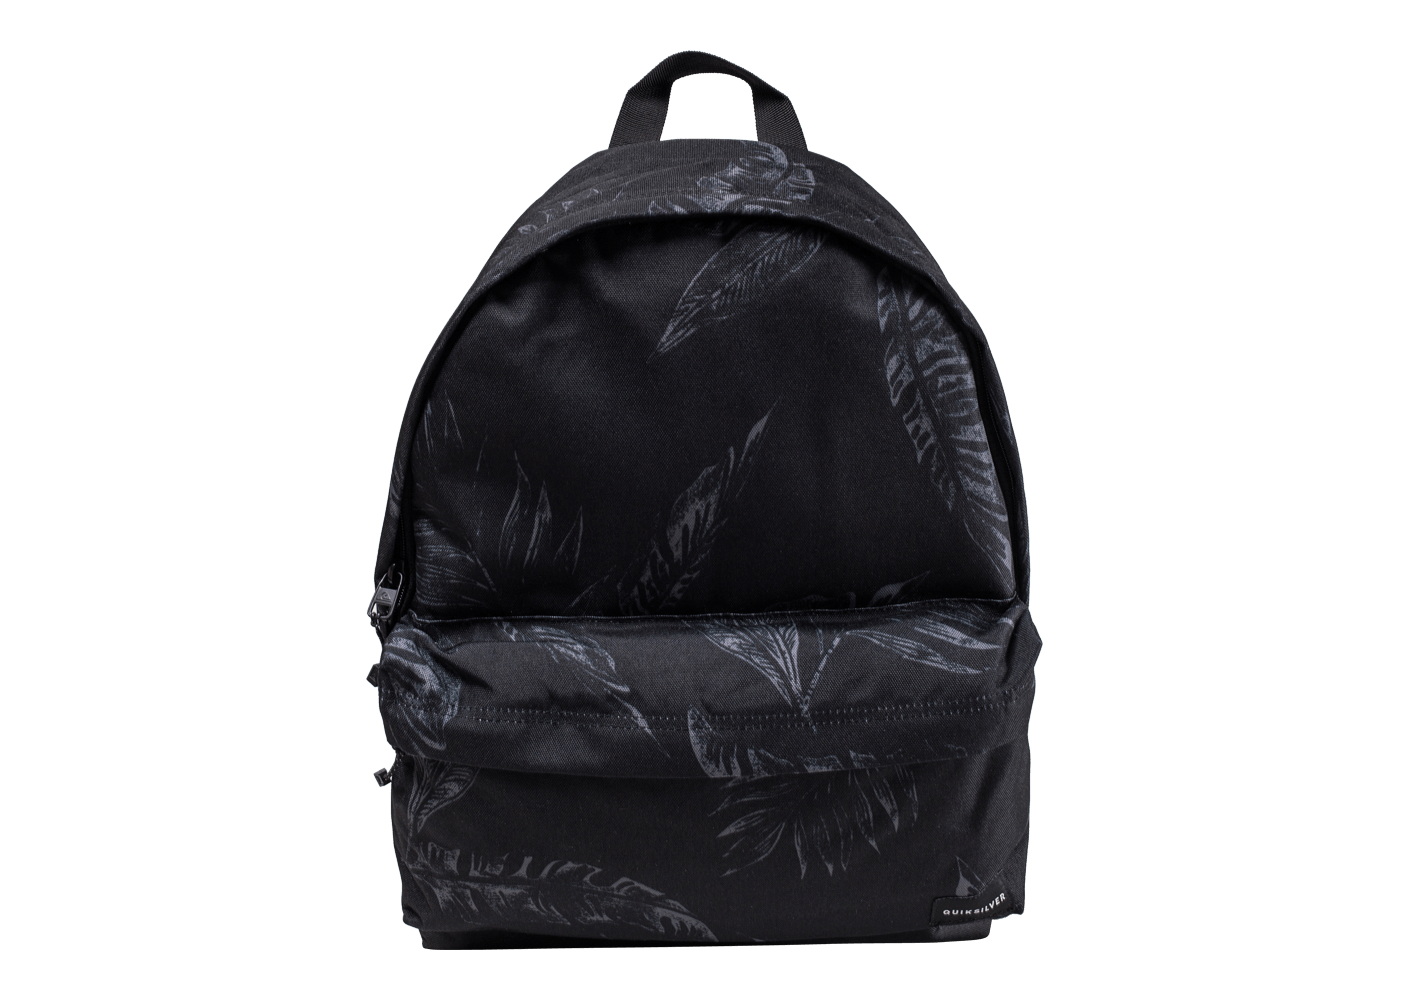 quiksilver sac dos everyday edit noir black friday chausport. Black Bedroom Furniture Sets. Home Design Ideas